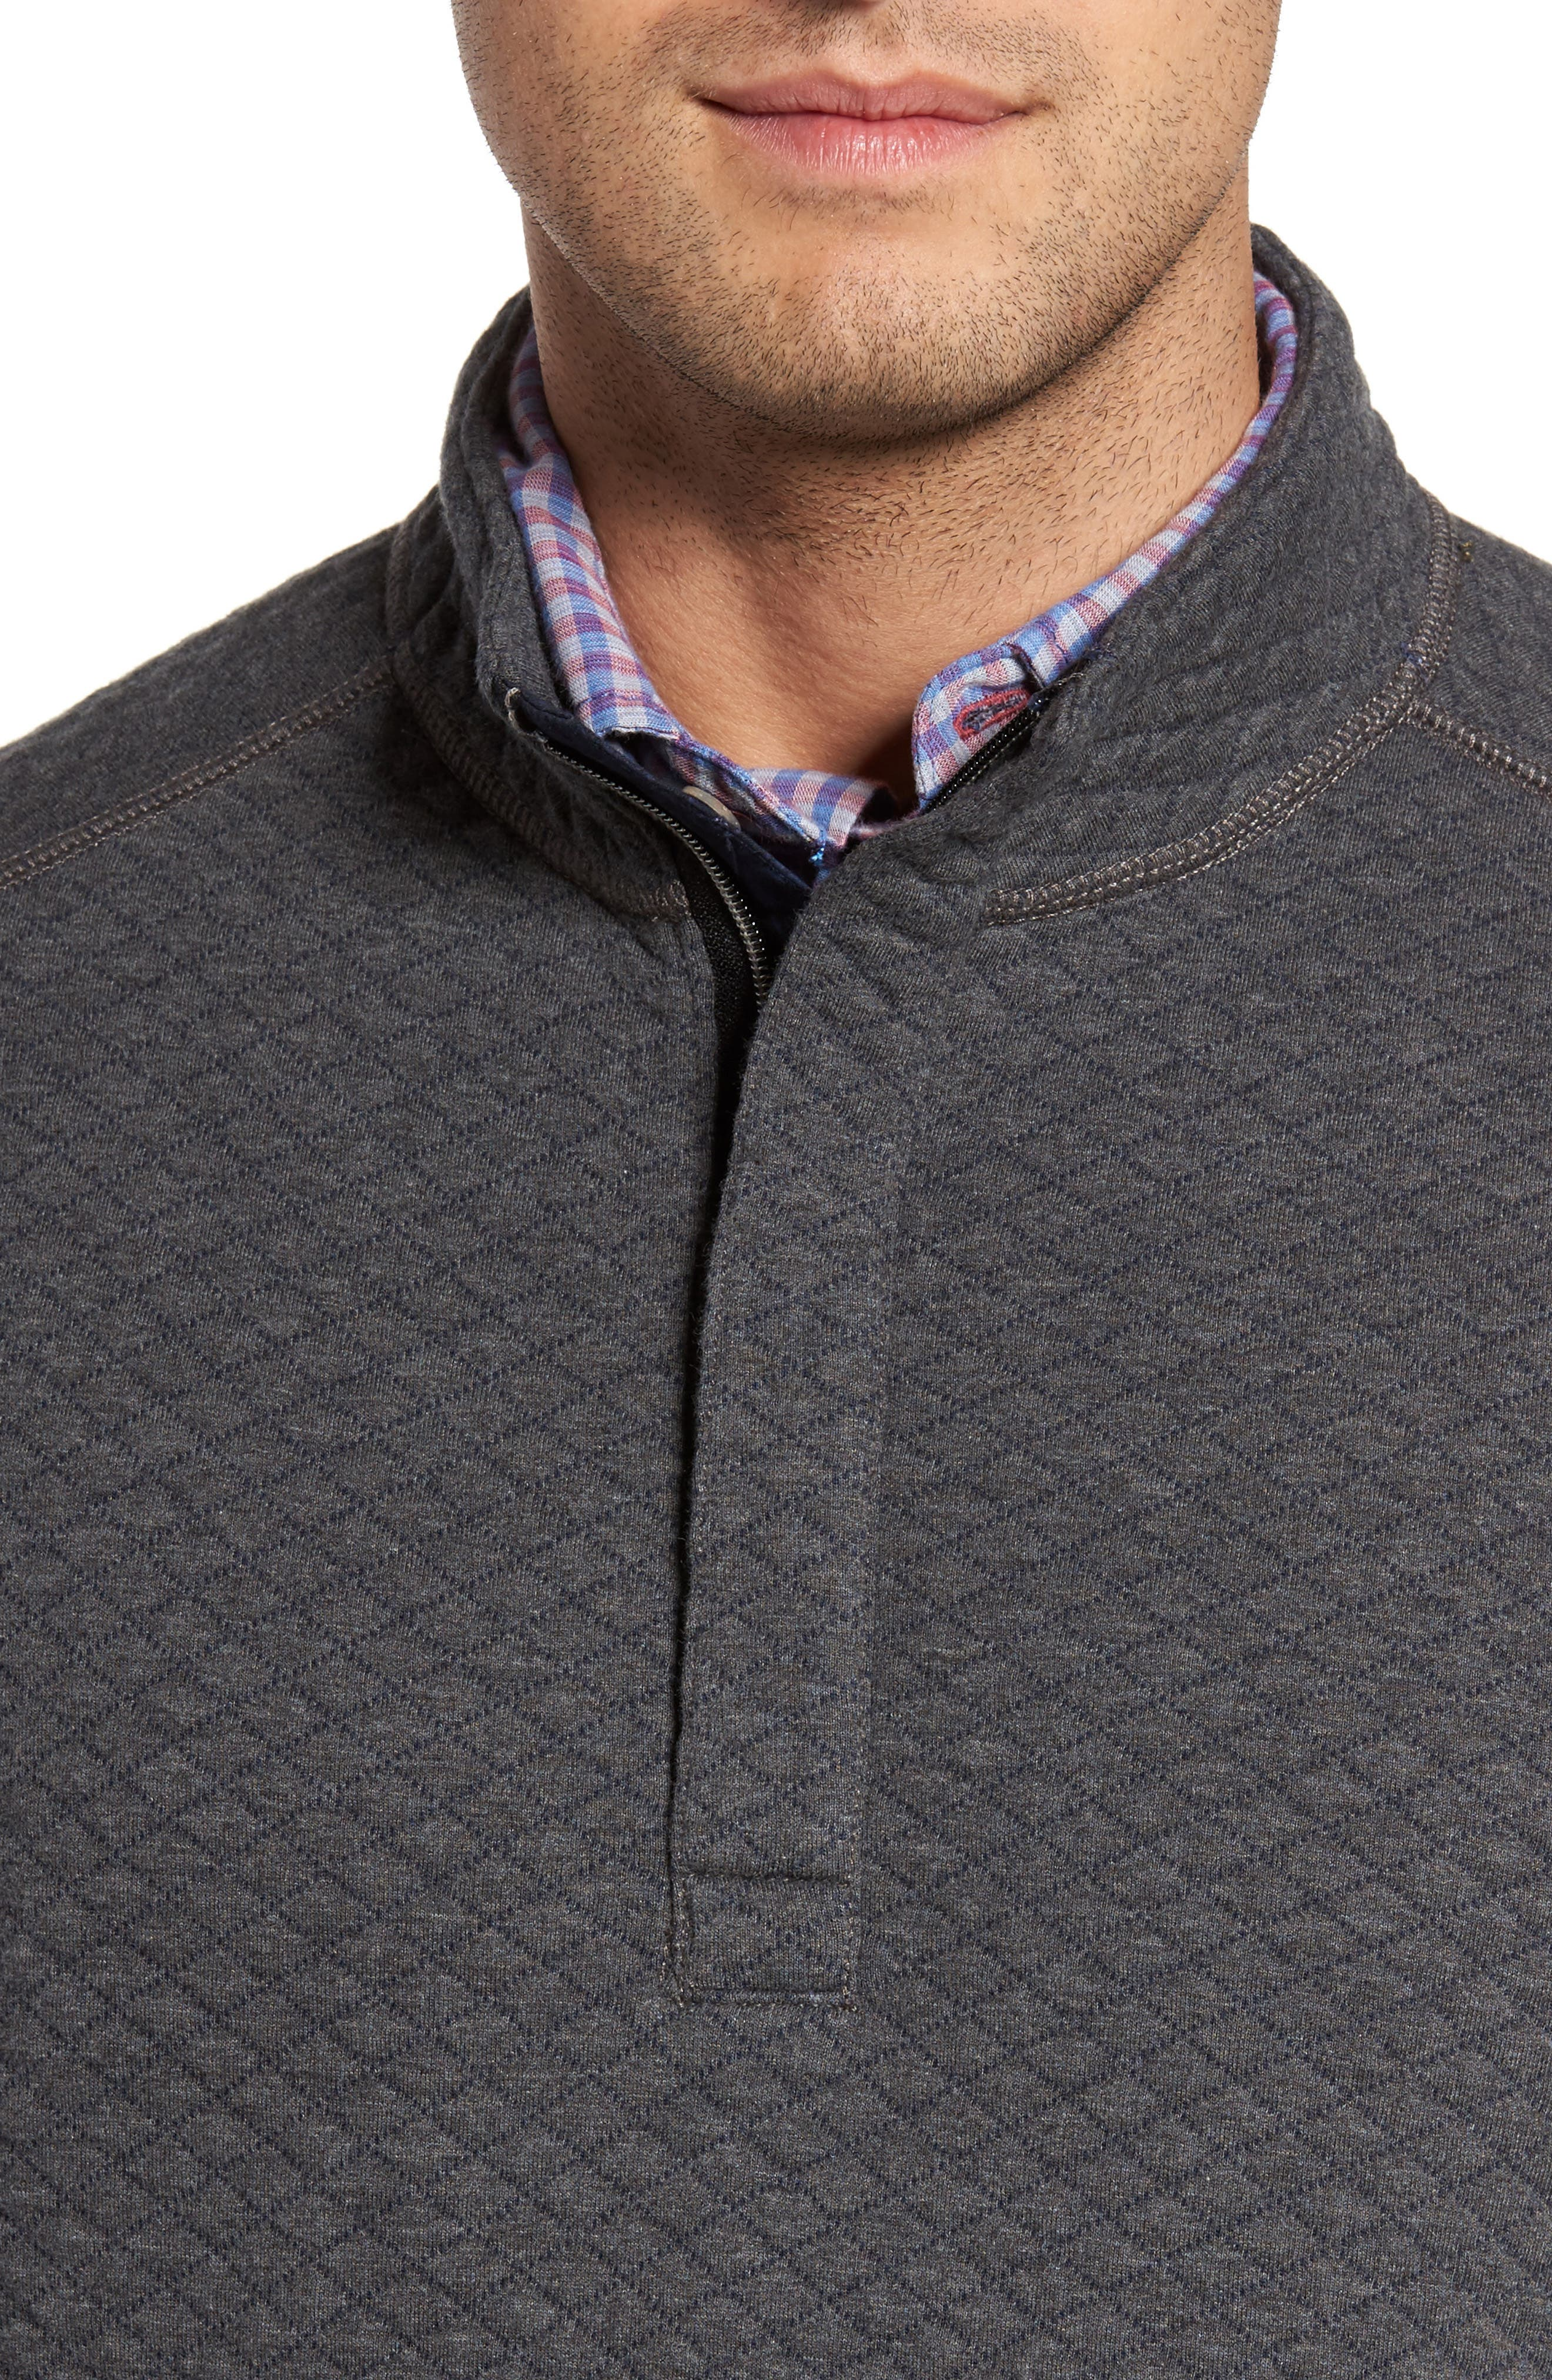 Quiltessential Standard Fit Quarter Zip Pullover,                             Alternate thumbnail 4, color,                             Charcoal Heather